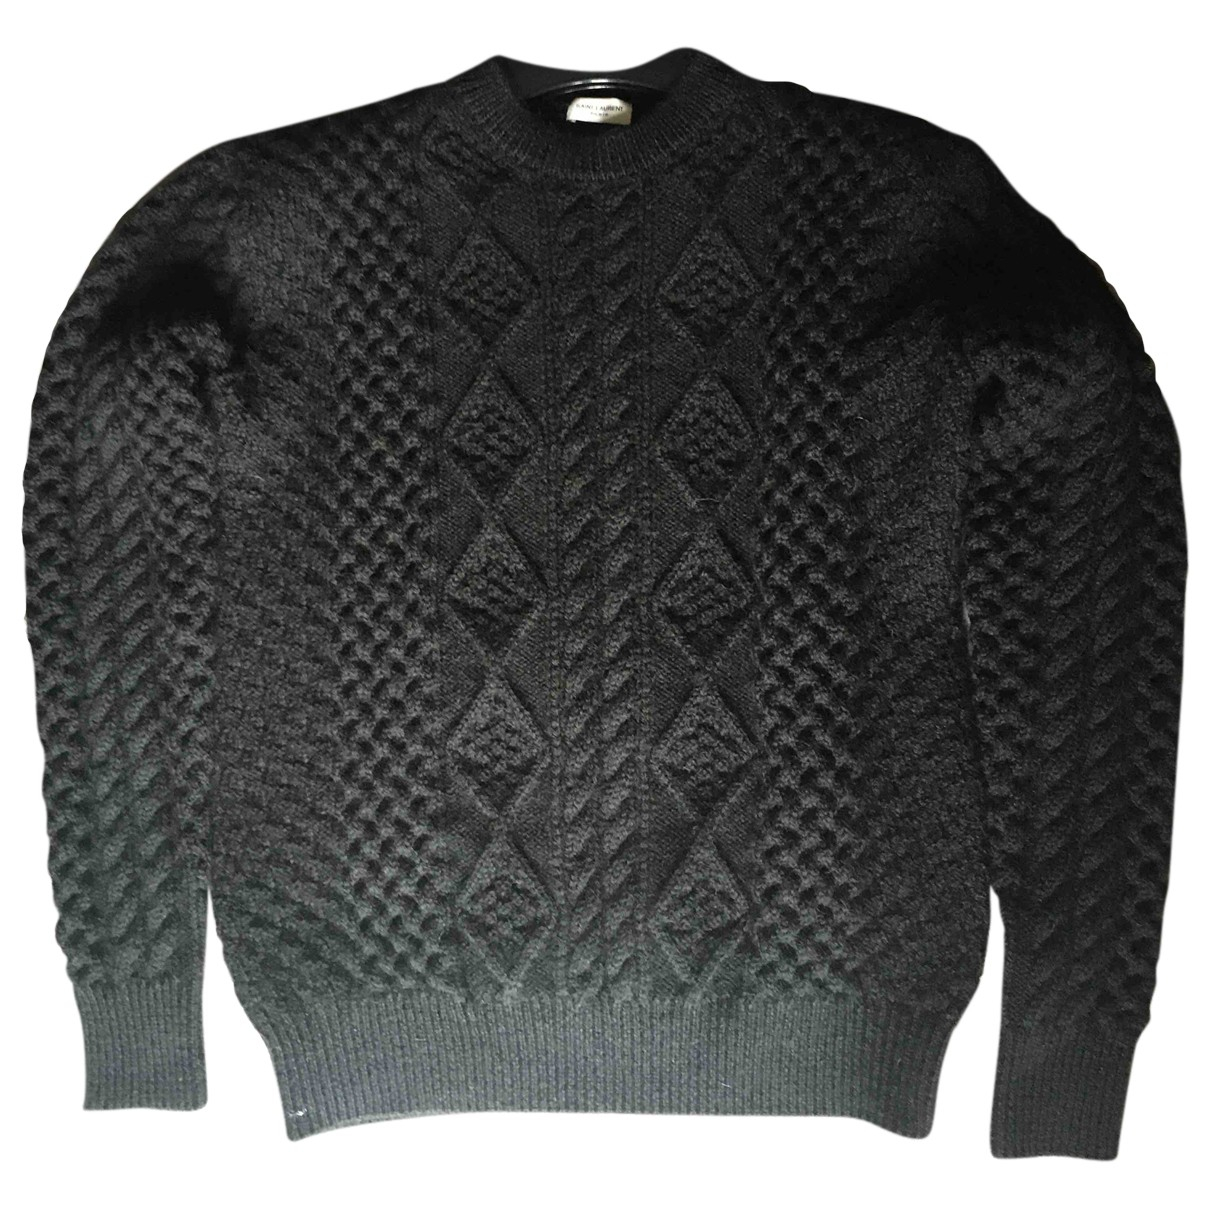 Saint Laurent N Black Wool Knitwear & Sweatshirts for Men XS International